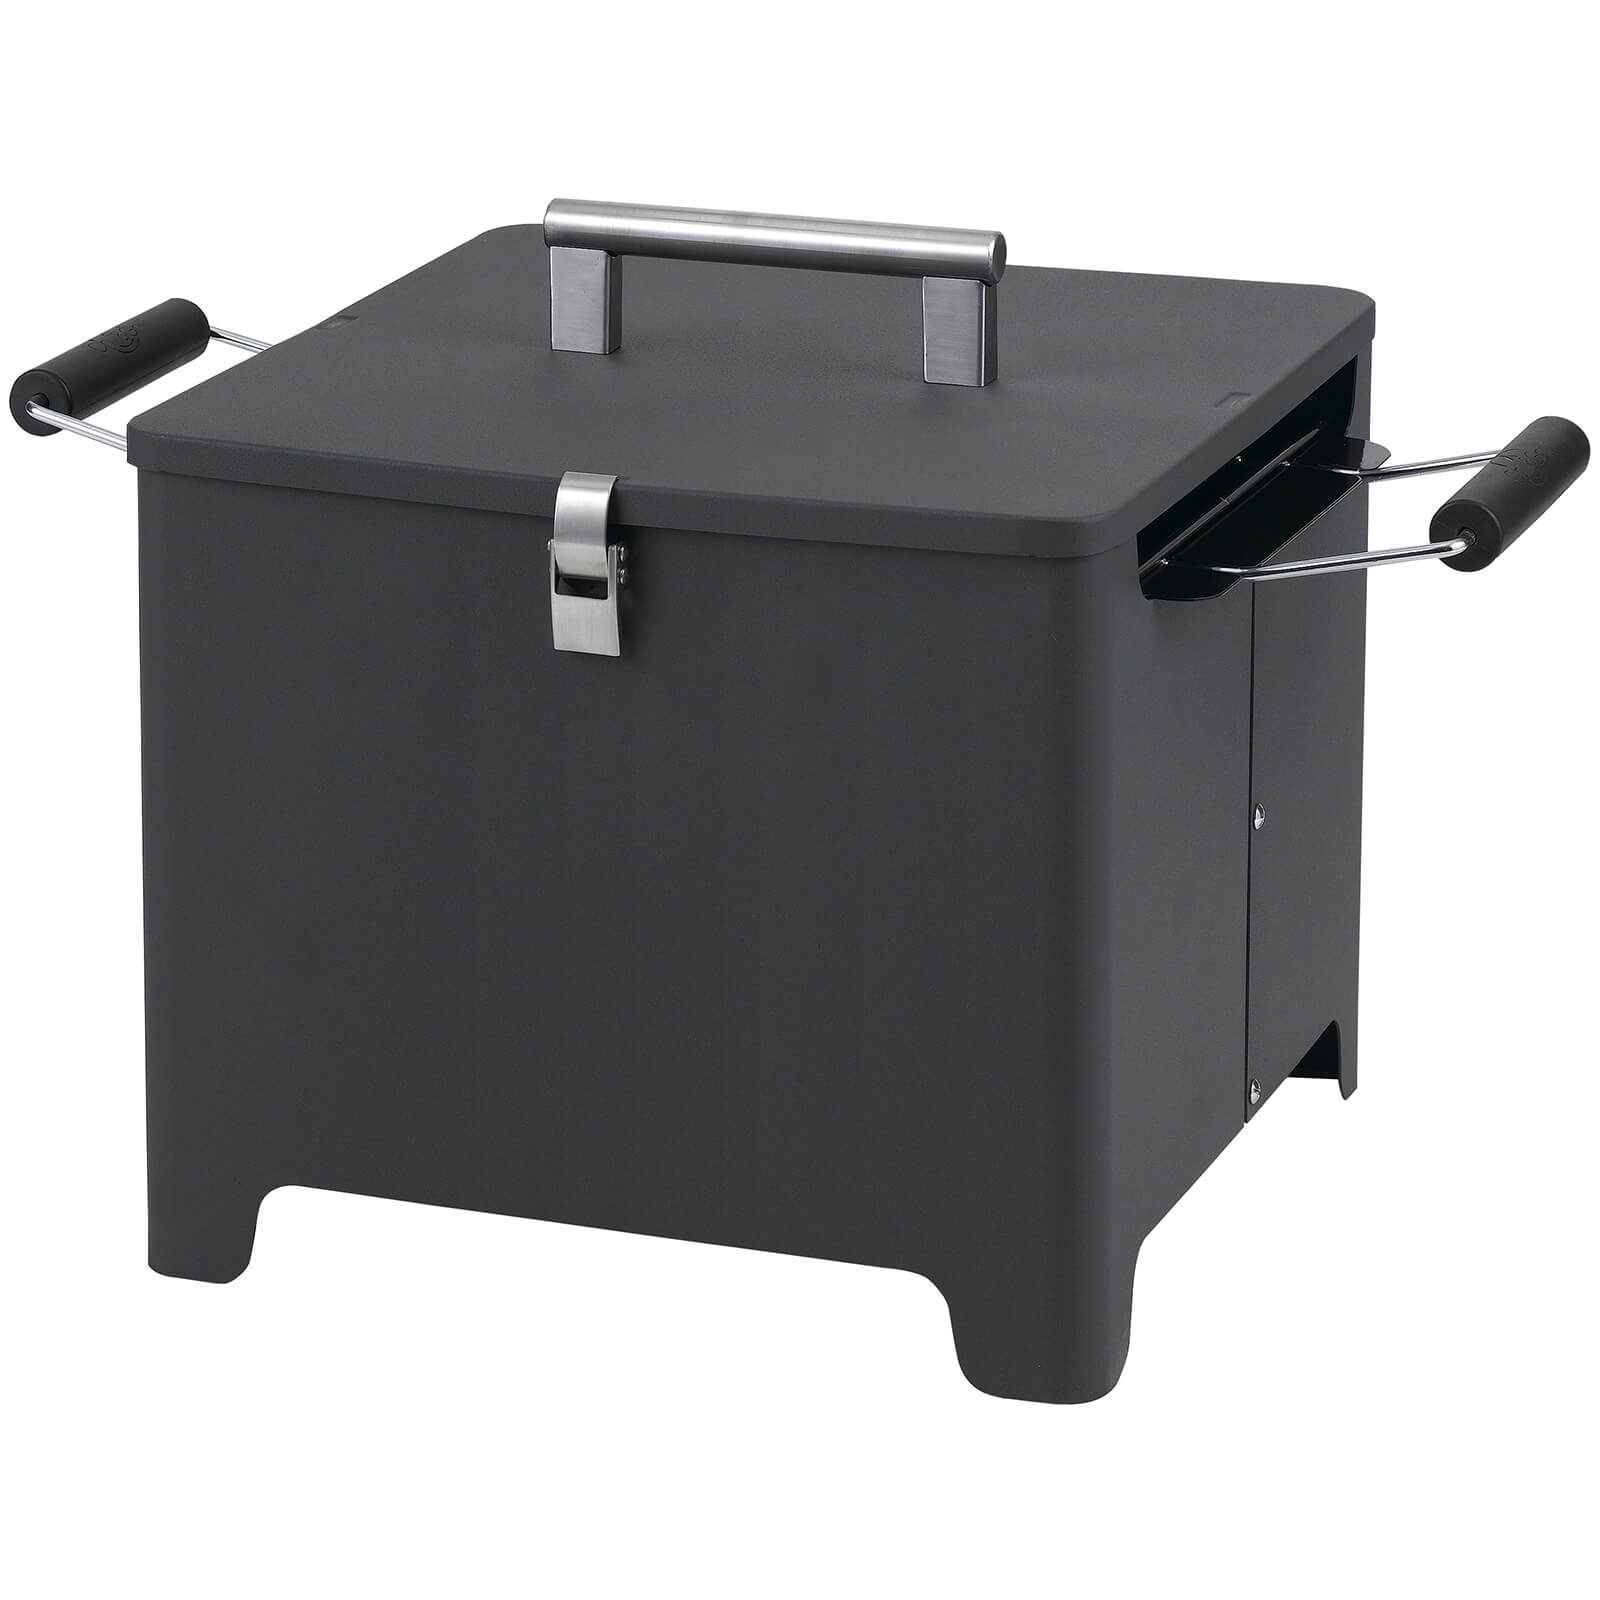 Tepro Chill&Grill Charcoal BBQ Cube - Anthracite